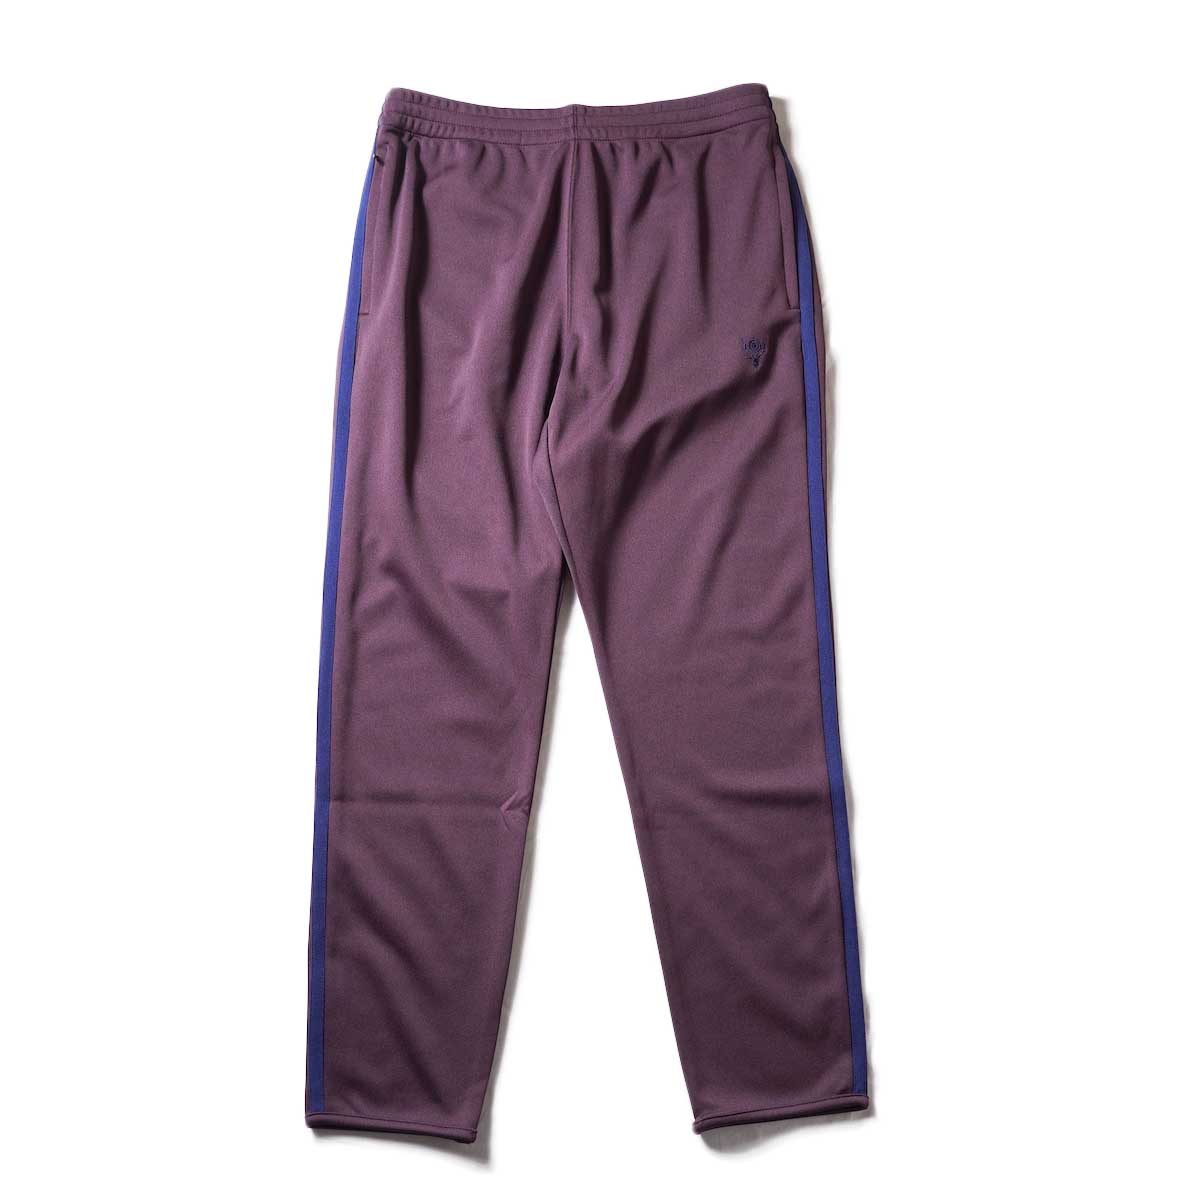 South2 West8 / Trainer Pants - Poly Smooth (Burgundy)